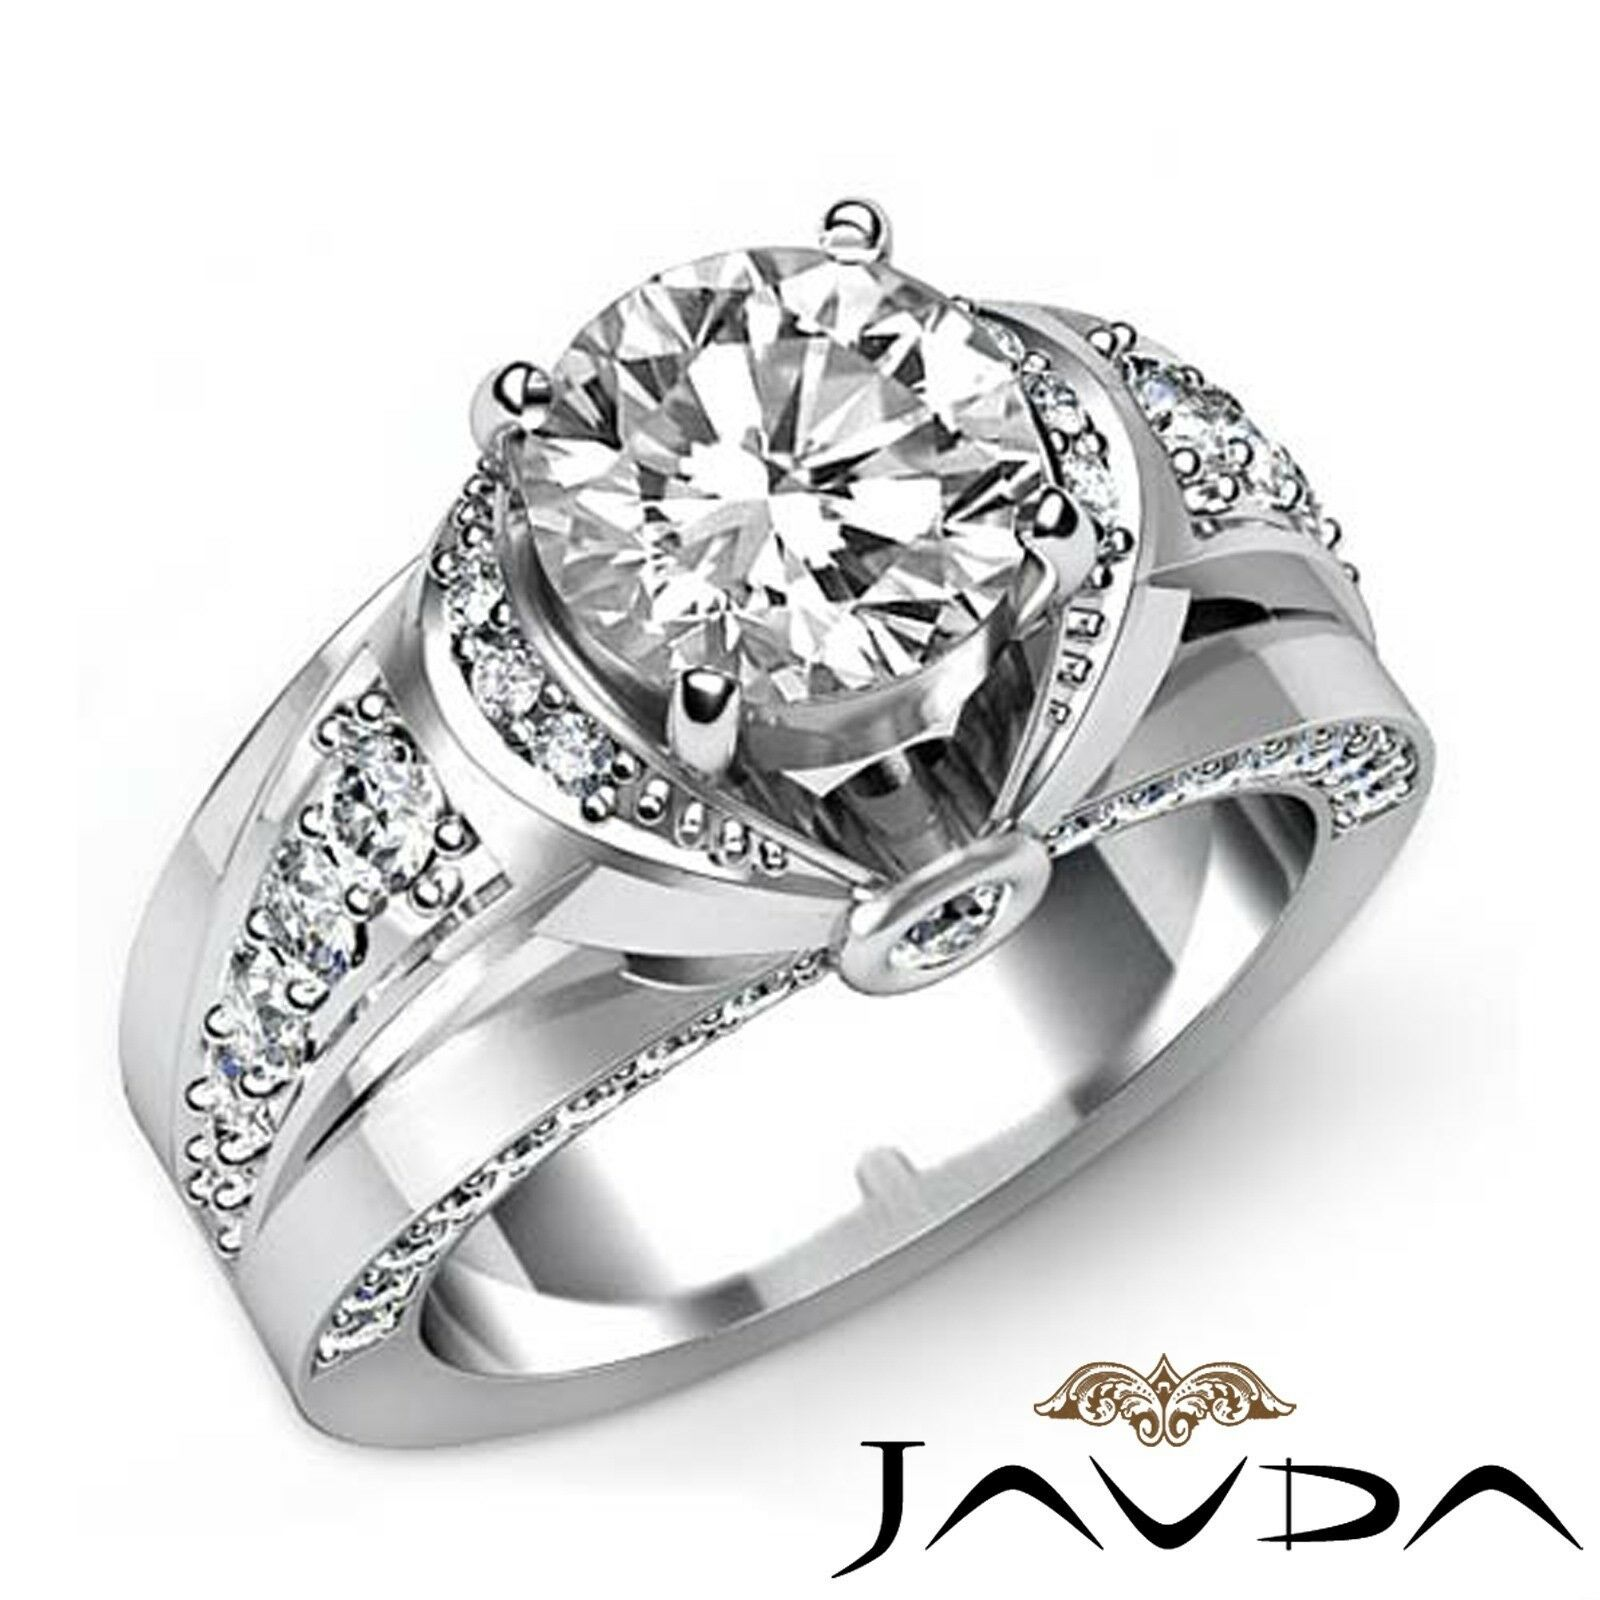 2.91ct Knot Classic Sidestone Round Diamond Engagement Ring GIA E-VS1 White Gold